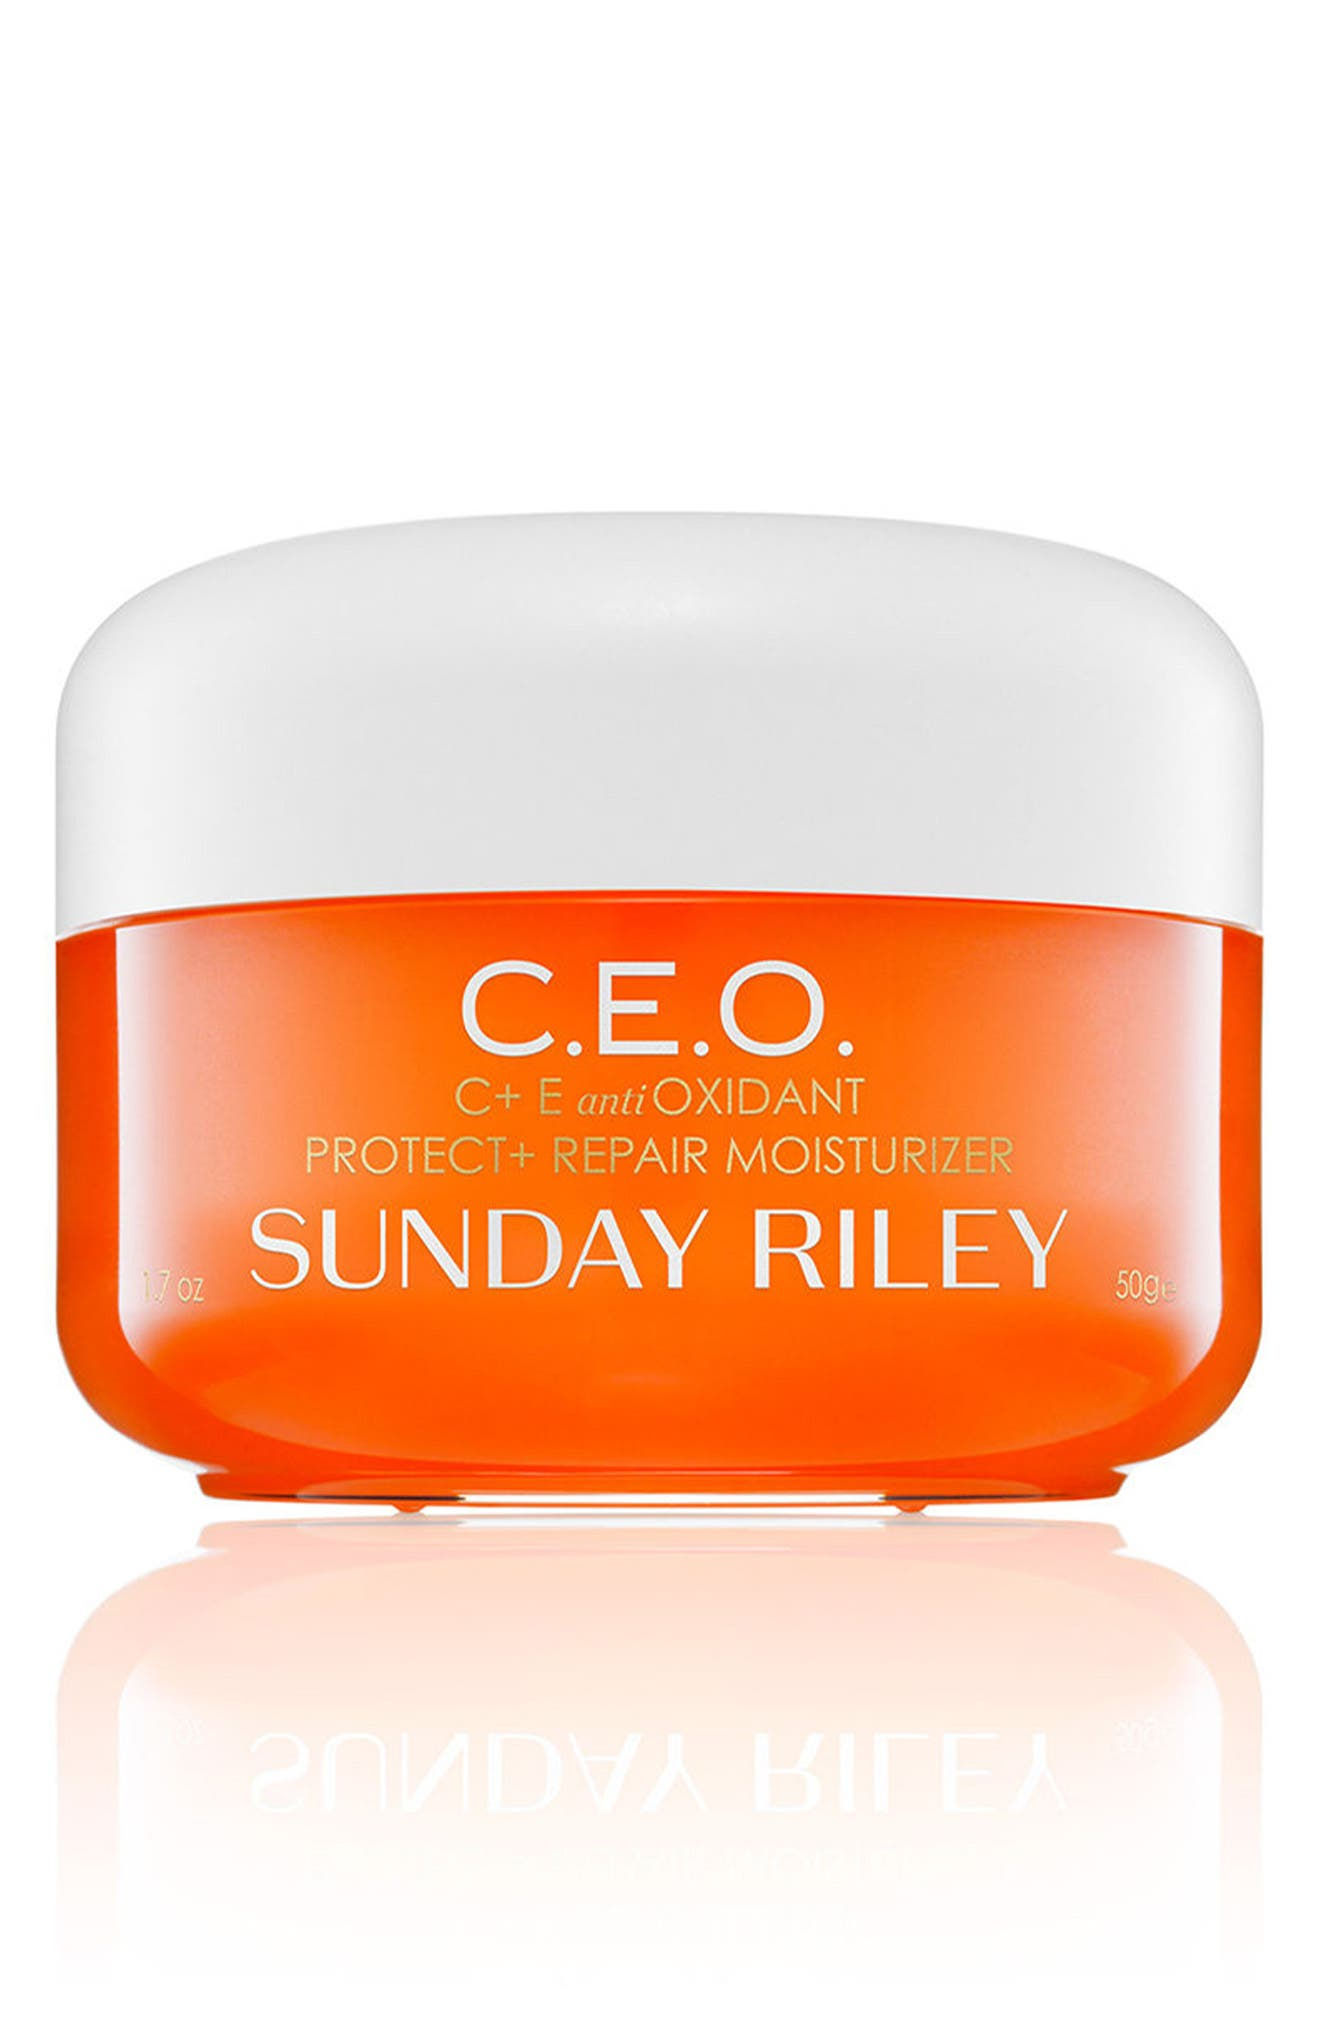 Main Image - SPACE.NK.apothecary Sunday Riley C.E.O. C + E Antioxidant Protect & Repair Moisturizer